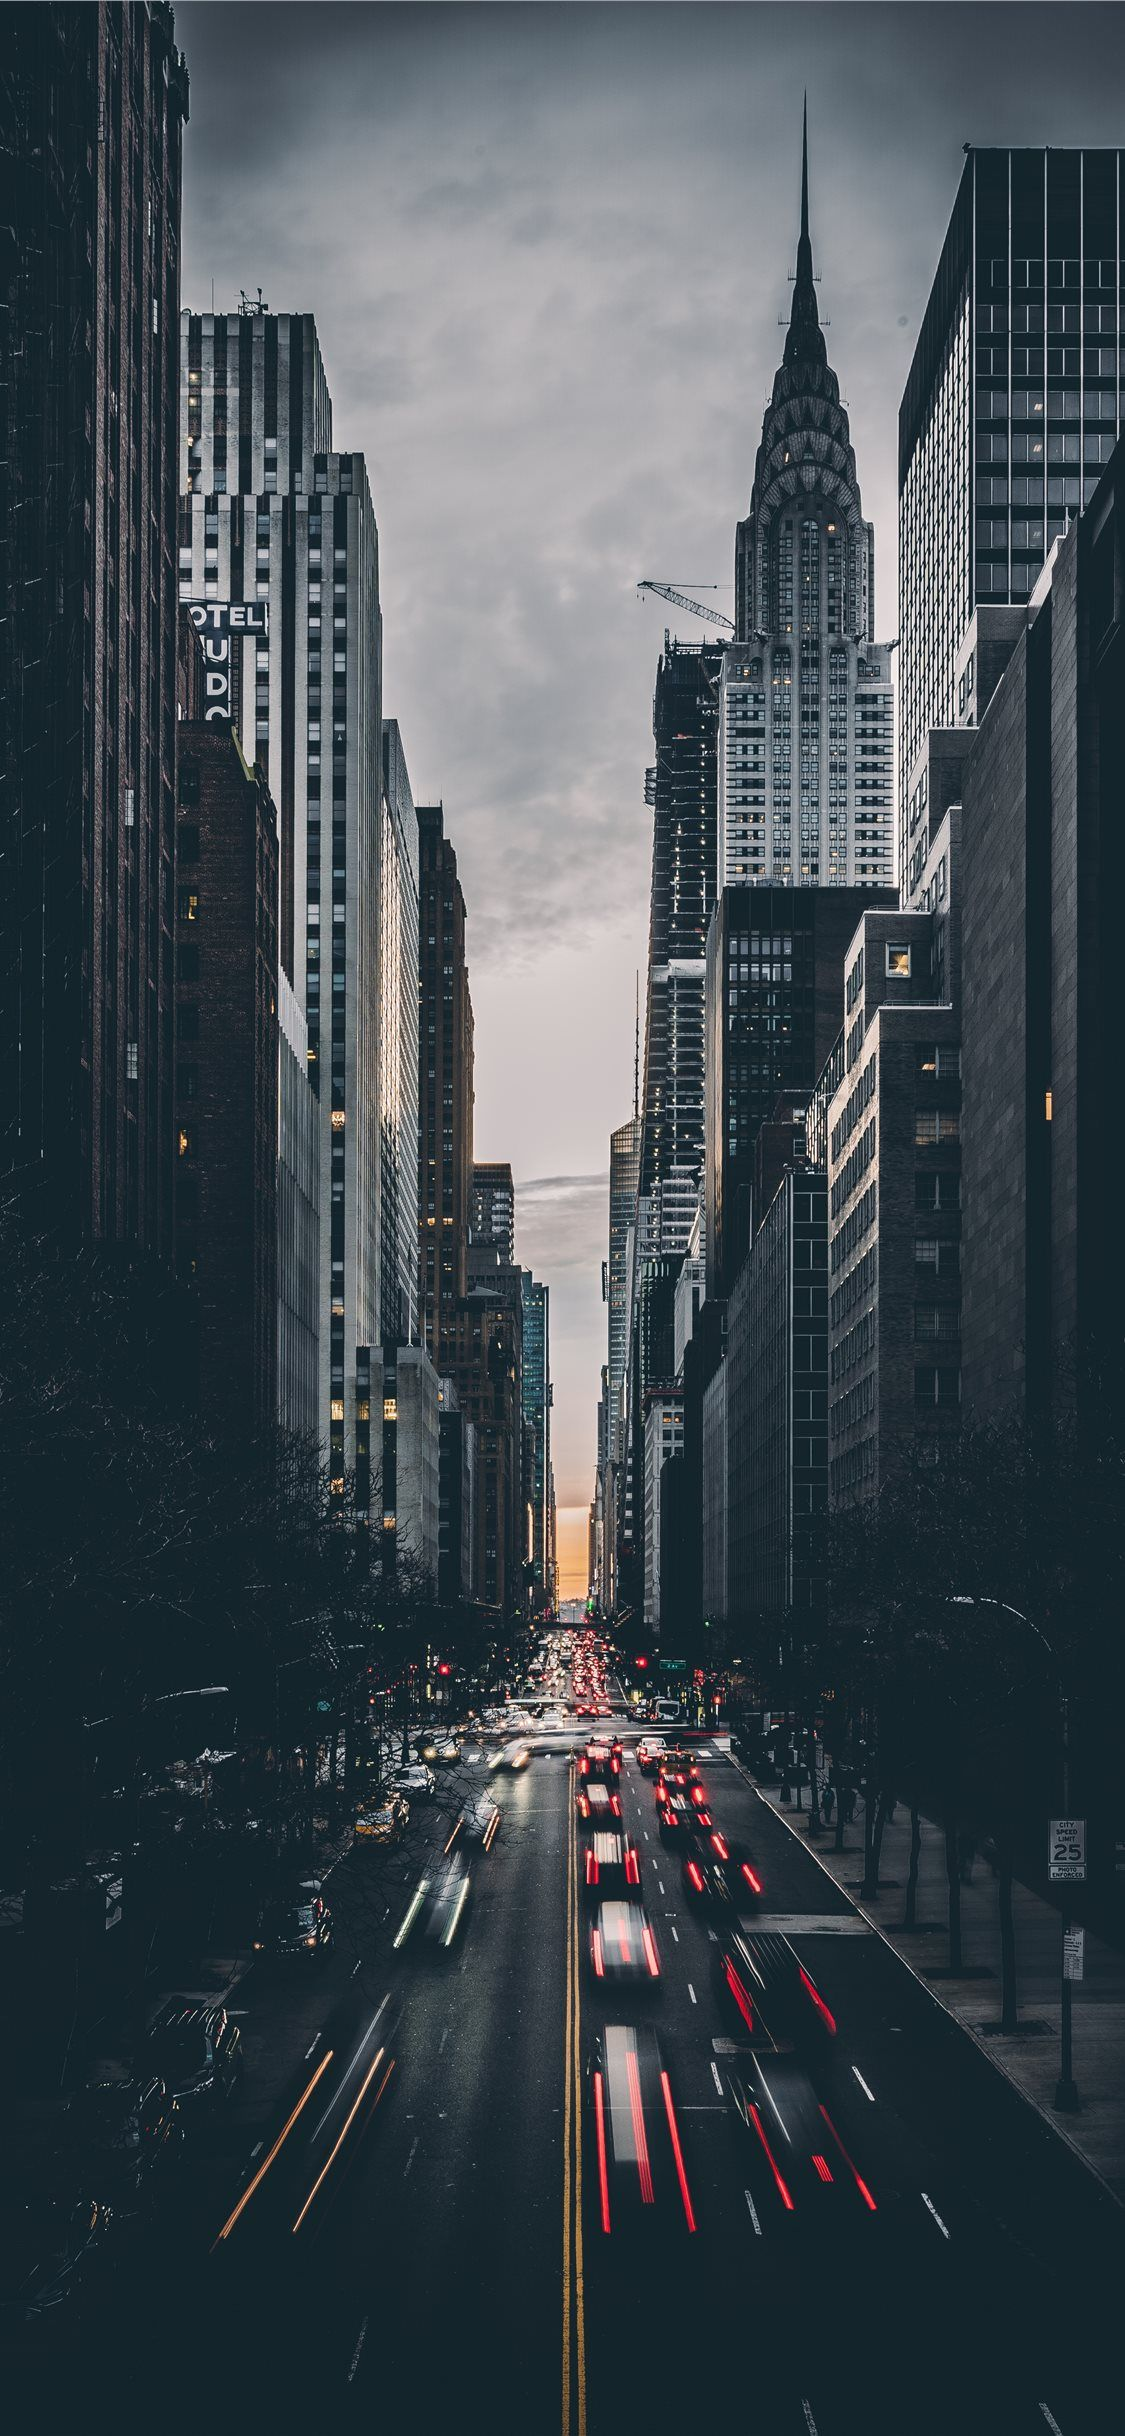 Tudor City New York United States iPhone X Wallpapers